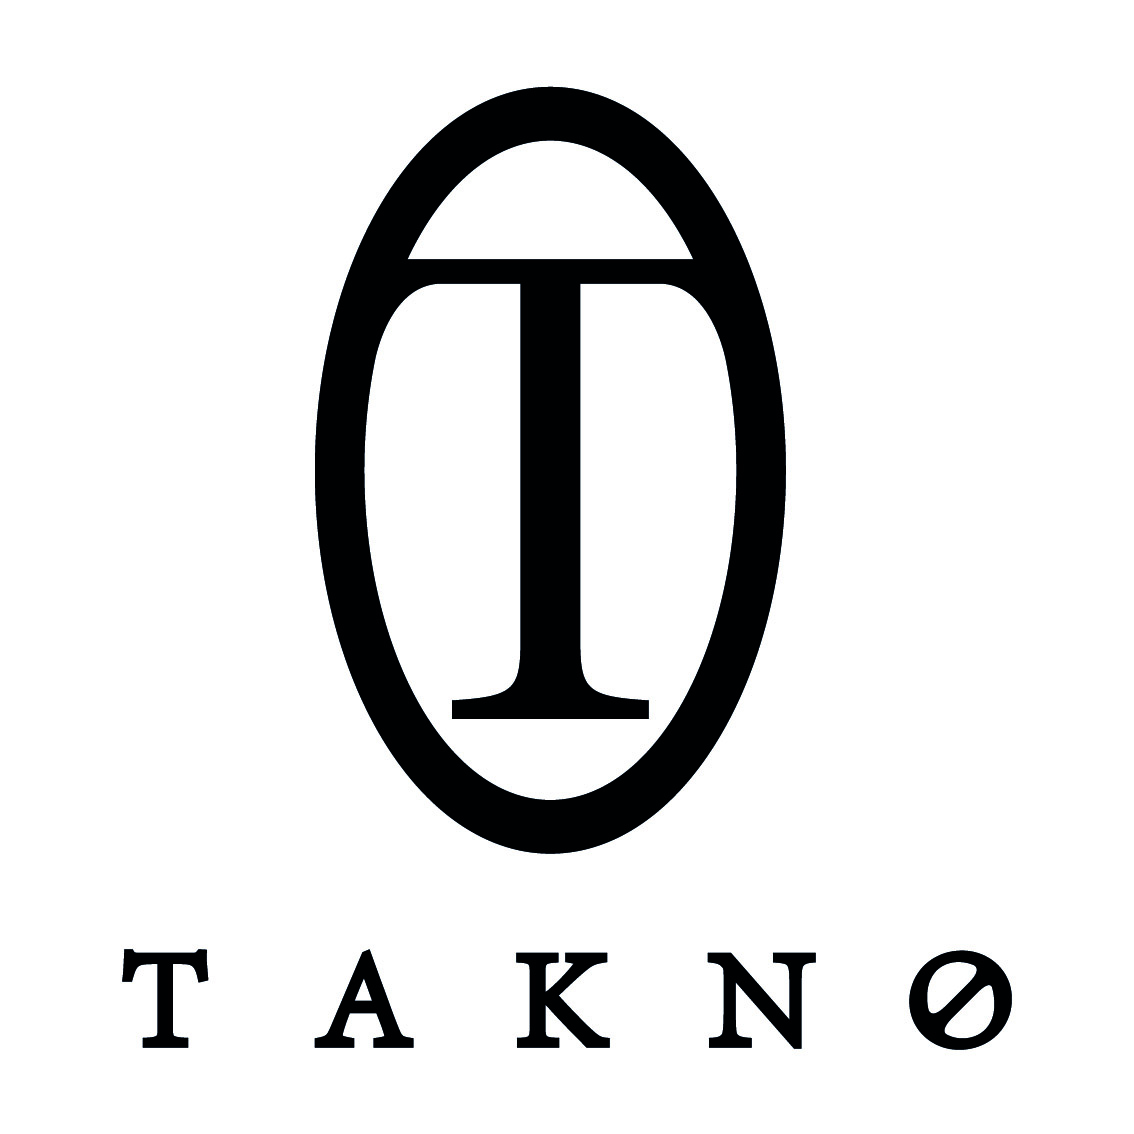 Takno Official Clothing Brand